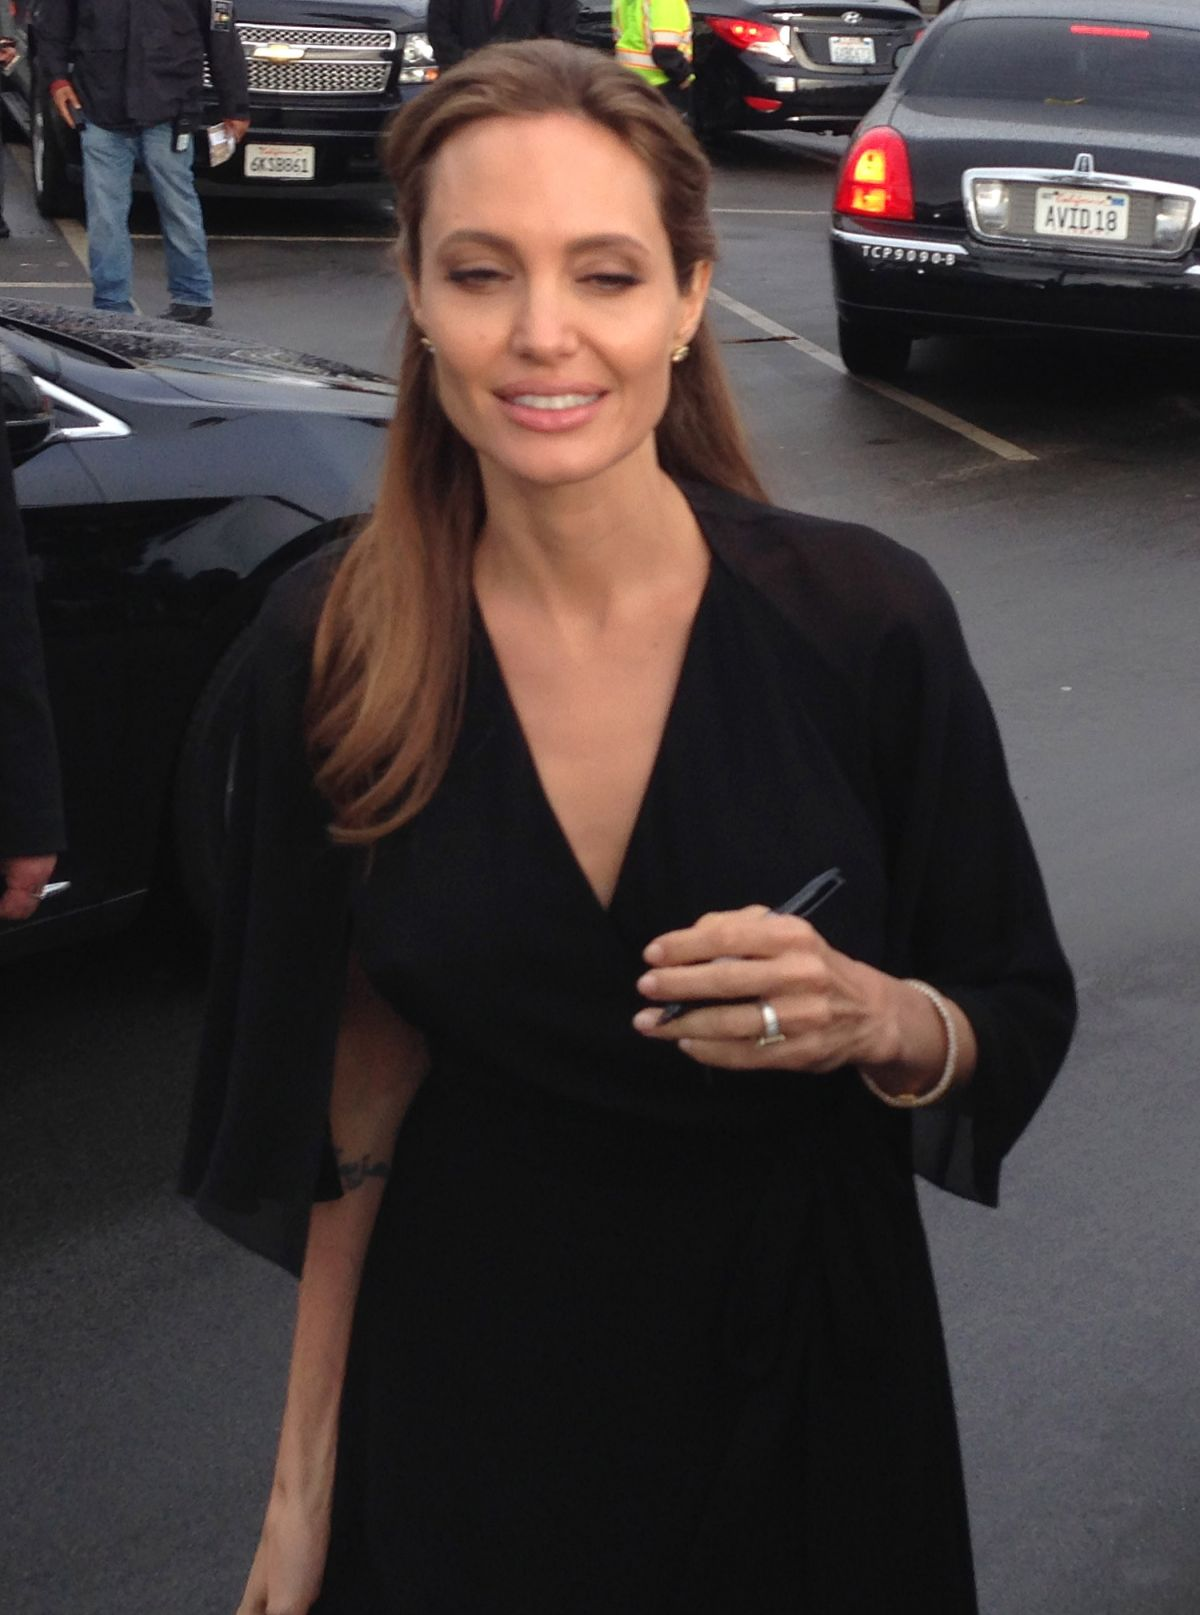 ANGELINA JOLIE Arrives at 2014 Film Independent Spirit Awards in Santa Monica